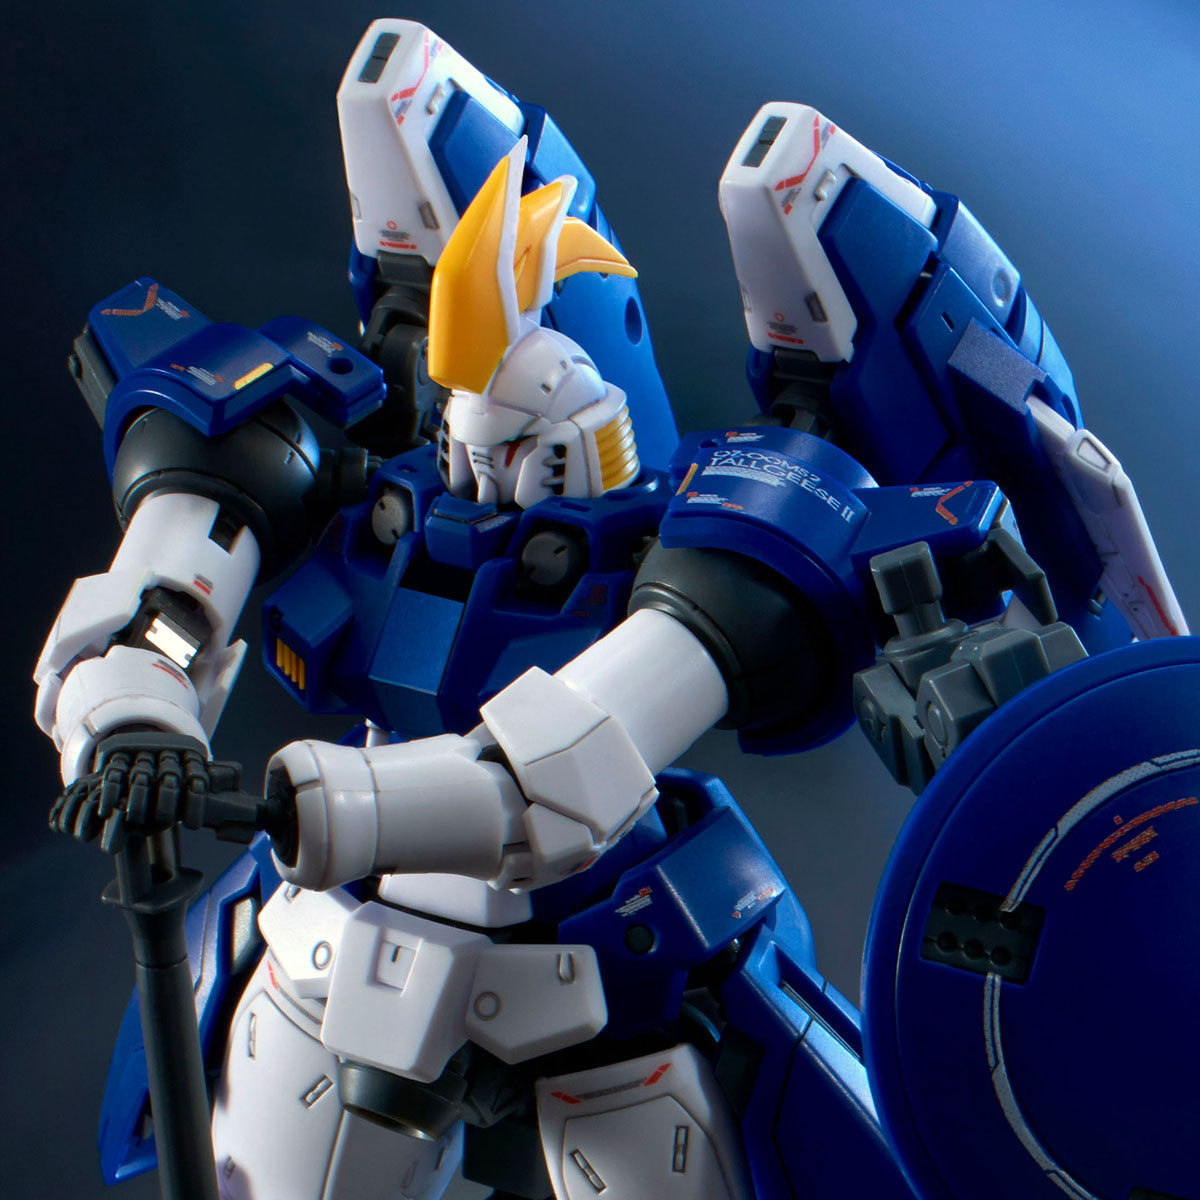 Rg 1 144 Tallgeese Ii Gundam Premium Bandai Singapore Online Store For Action Figures Model Kits Toys And More Best tallgeese i've seen so far on this subreddit, i think. rg 1 144 tallgeese ii gundam